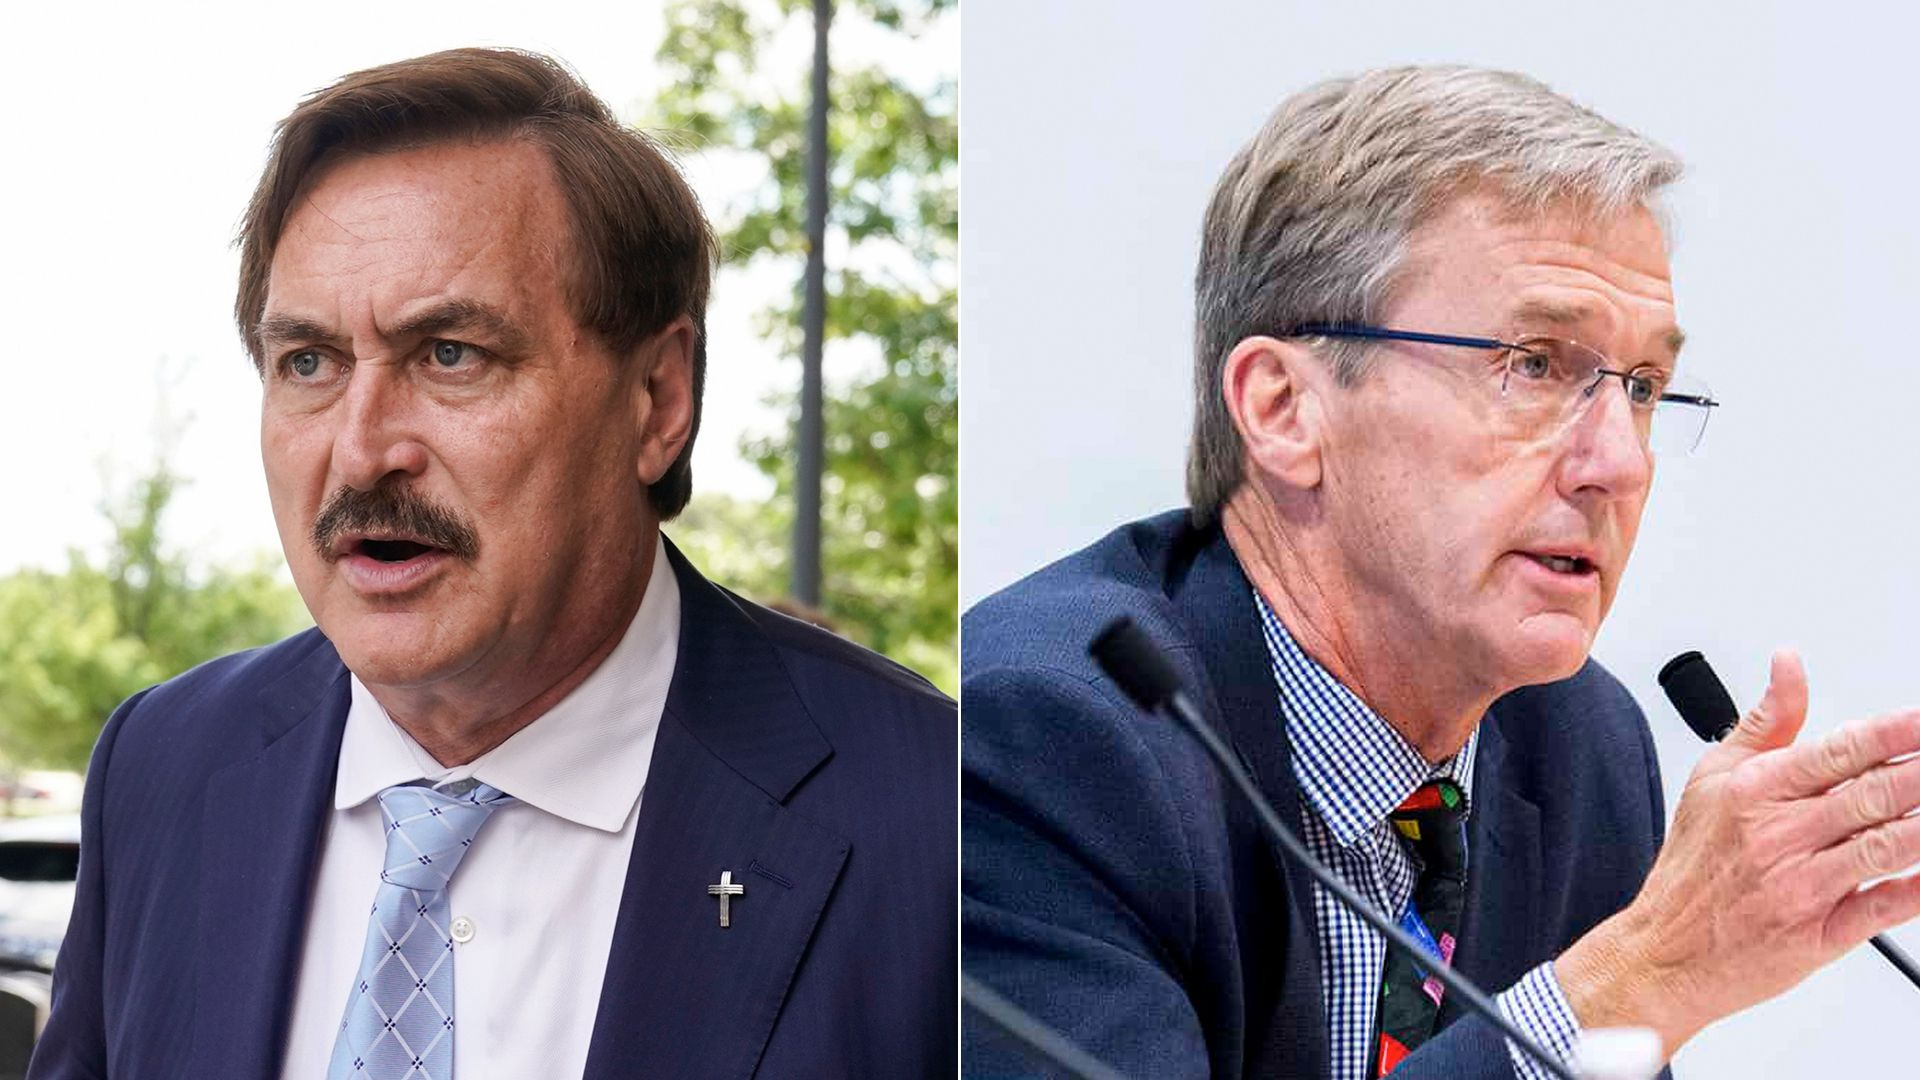 Scott Jensen and Mike Lindell